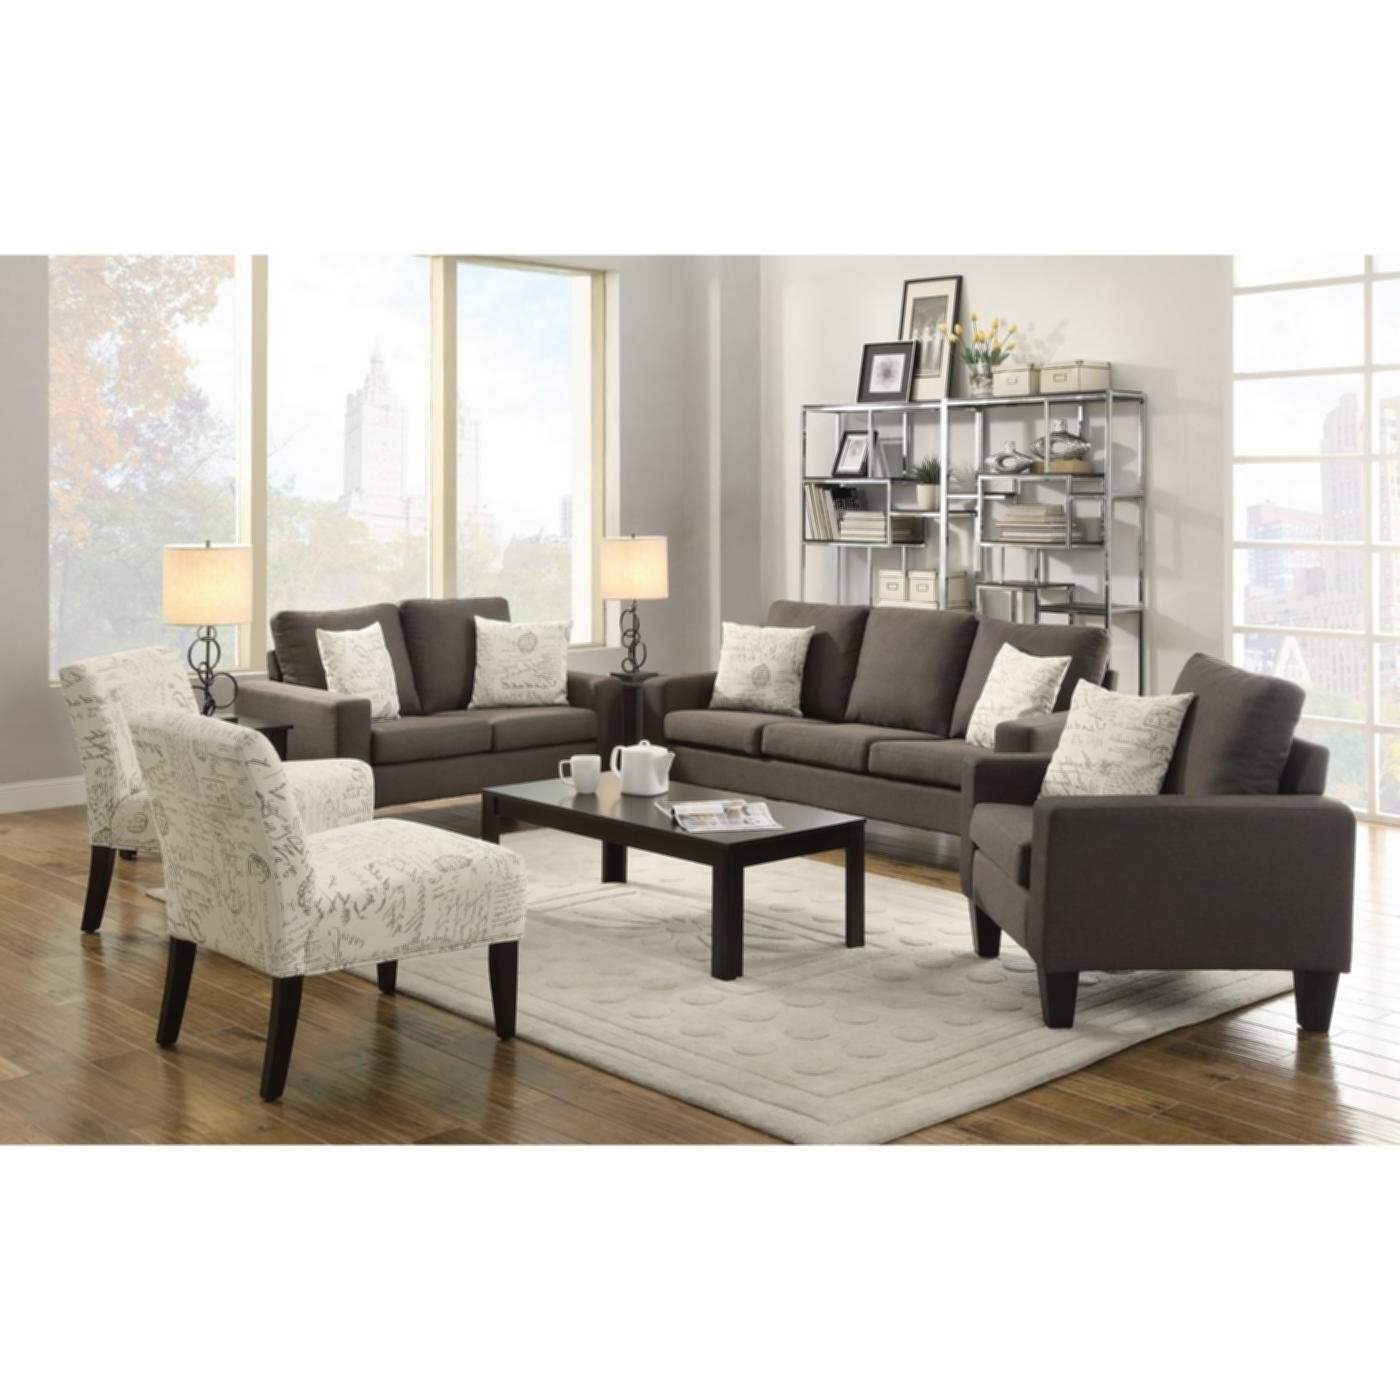 Sectional Sofas At Aarons With Preferred Living Room Sets Pictures (View 17 of 20)